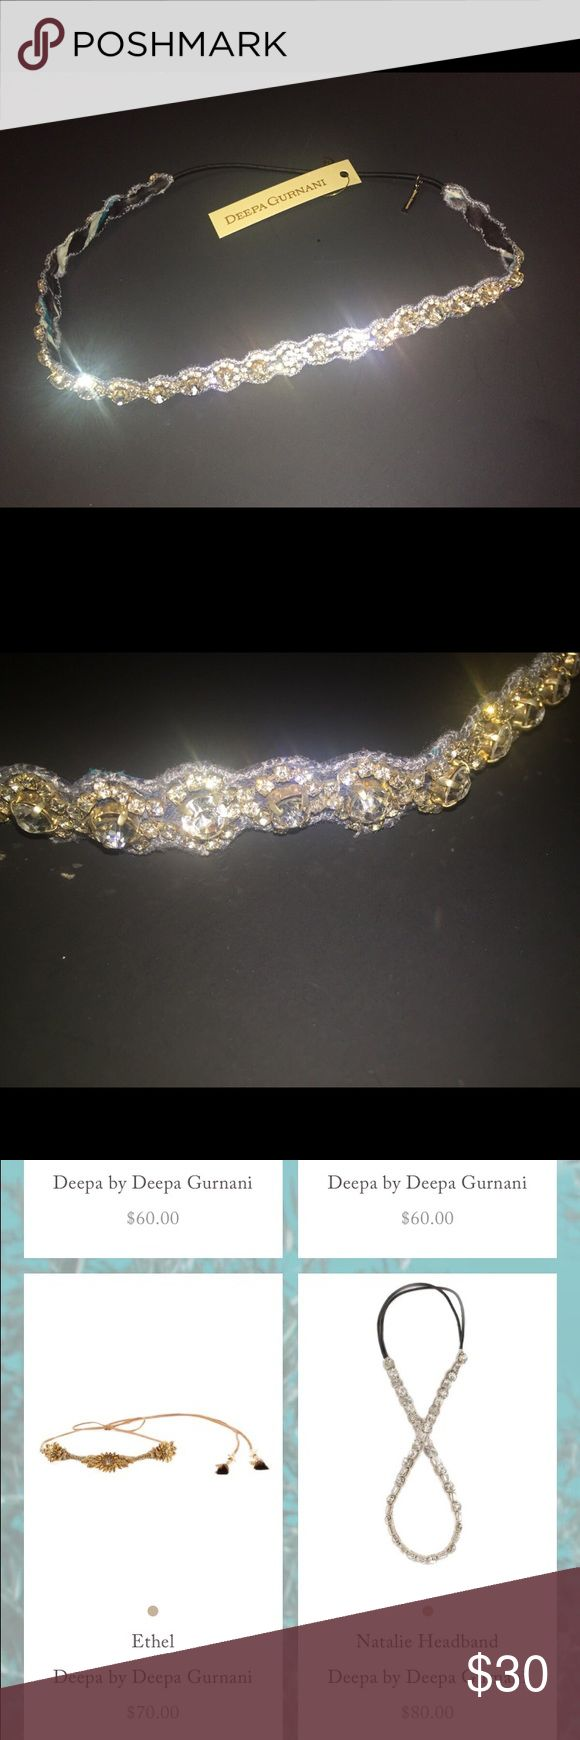 NWT DEEPA GURNANI HEADBAND Gorgeous, sparkly Deepa Gurnani Headbad. NWT, has never been worn. Perfect for special events or to dress a look up. Deepa Gurnani Accessories Hair Accessories